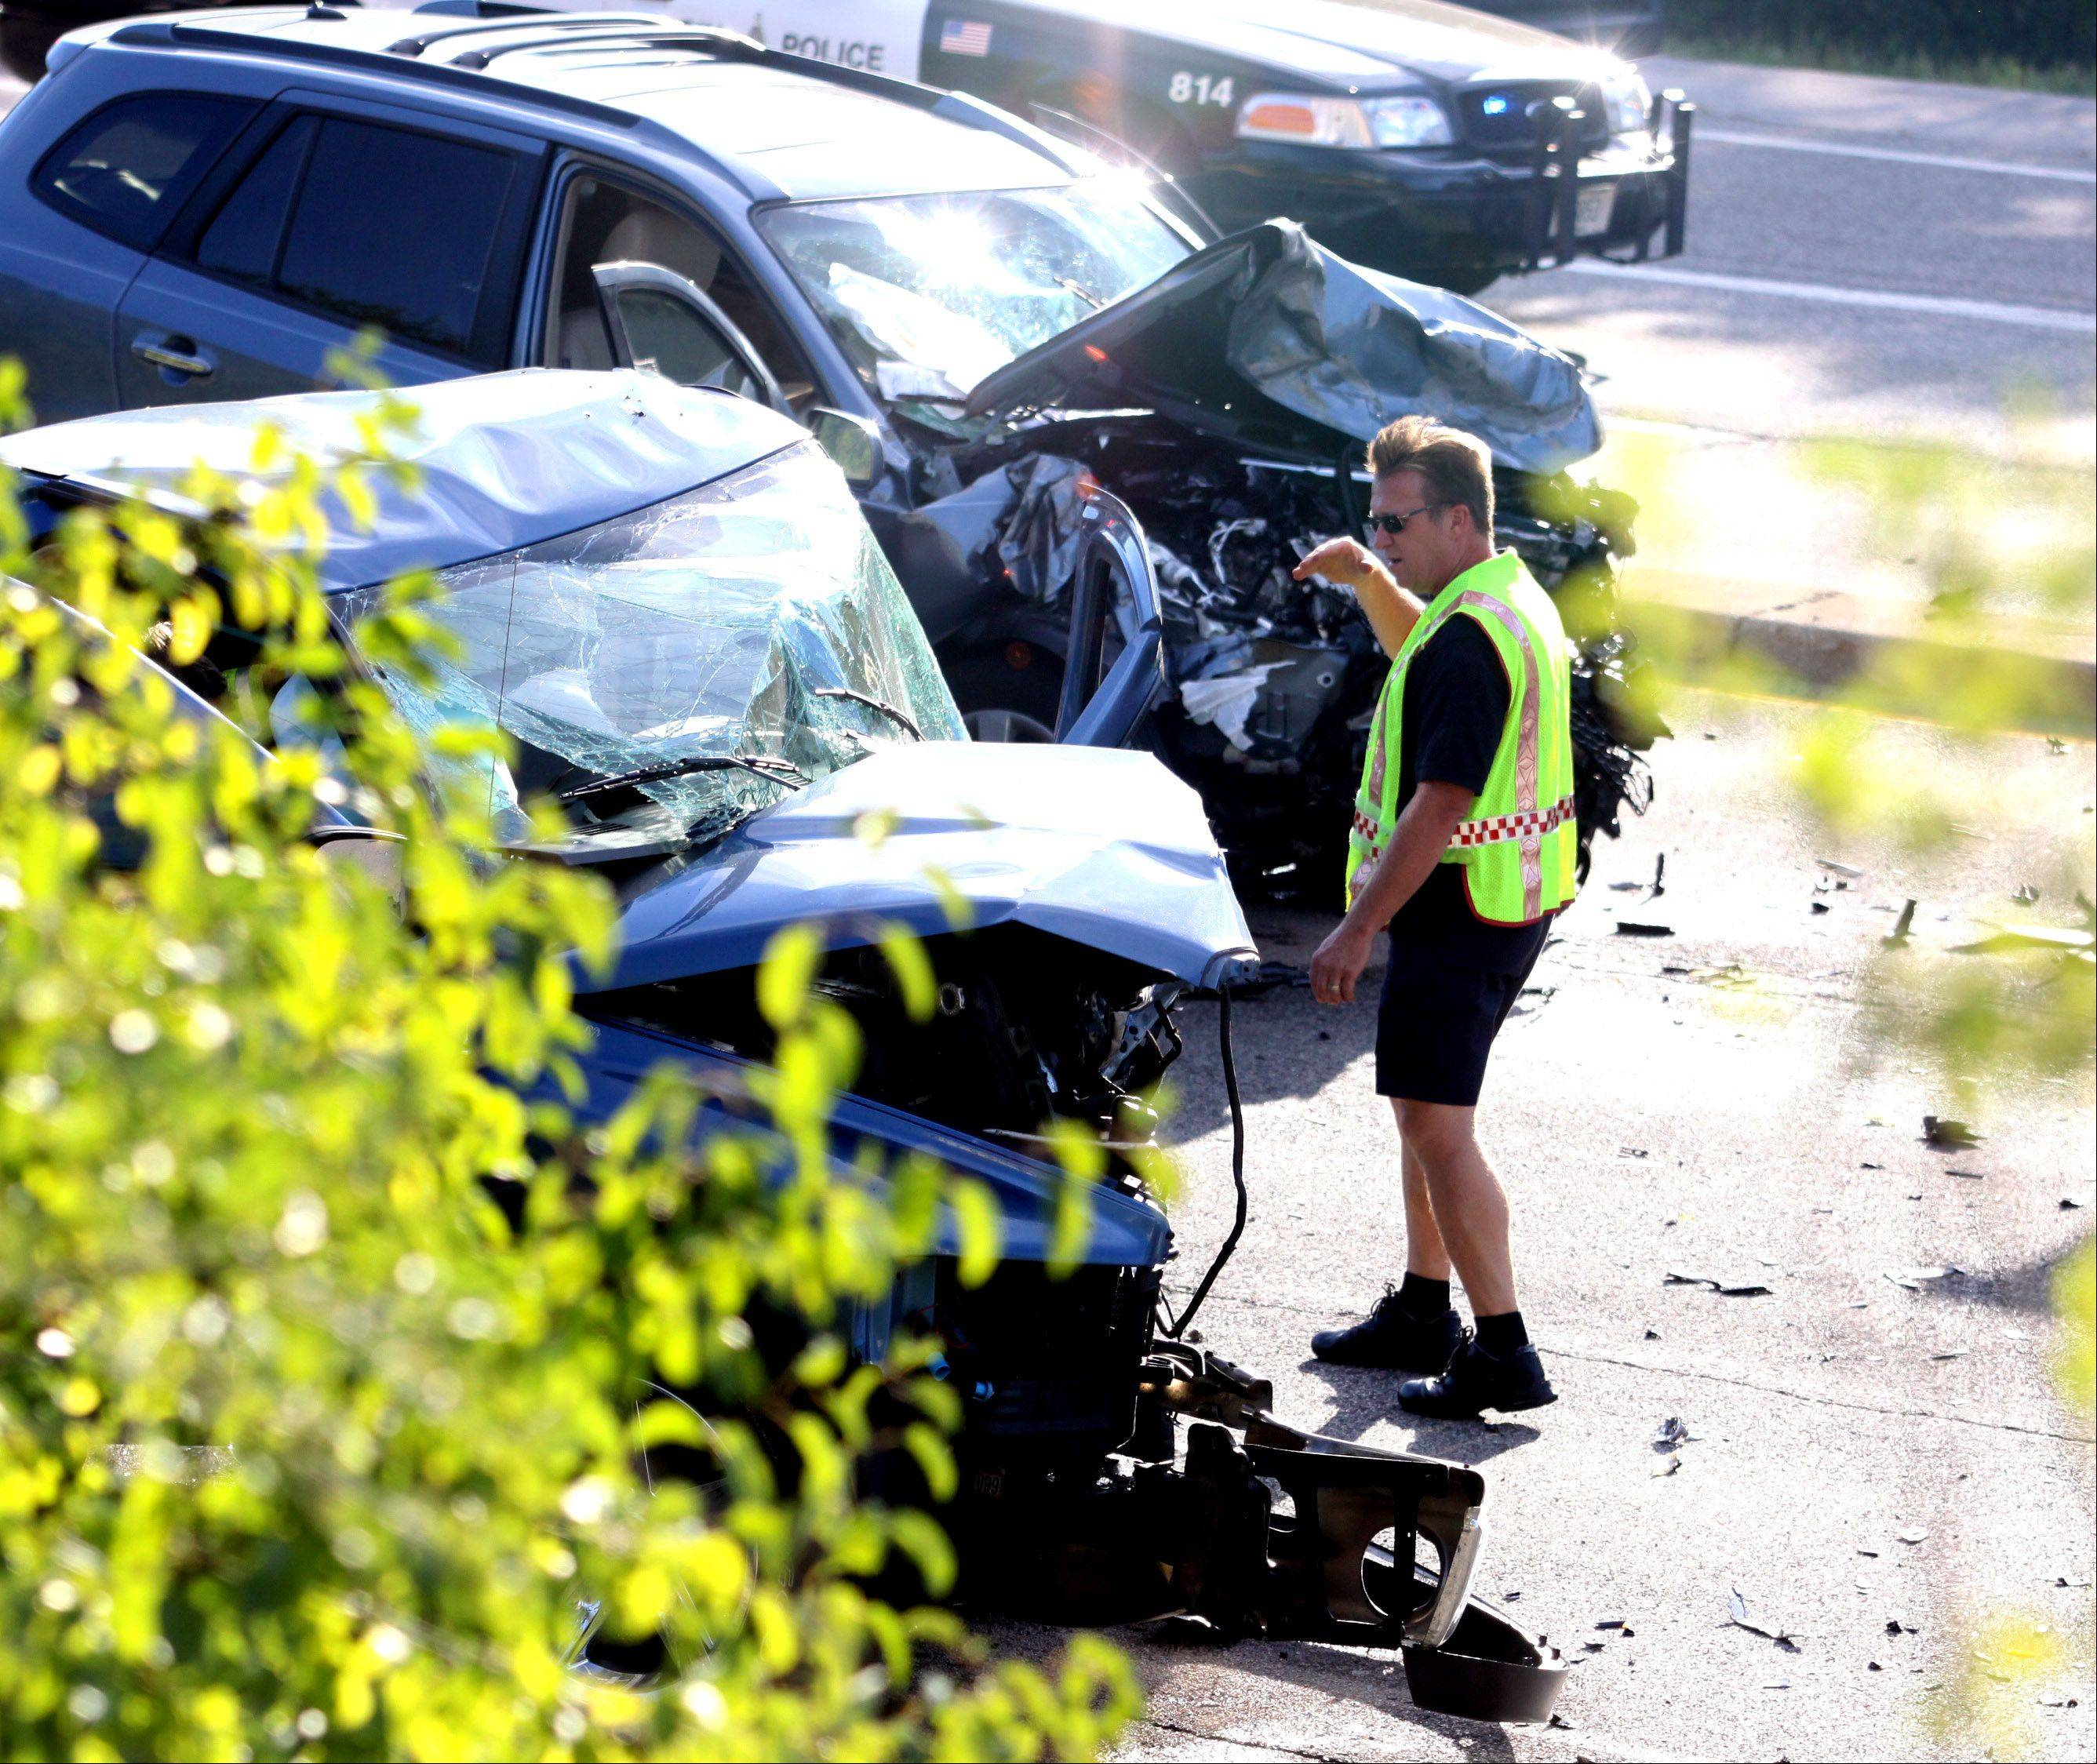 Elgin police and fire personnel examine the scene of a crash in the northbound lanes of Route 31 near the interchange with the Jane Addams Memorial Tollway on Tuesday afternoon.